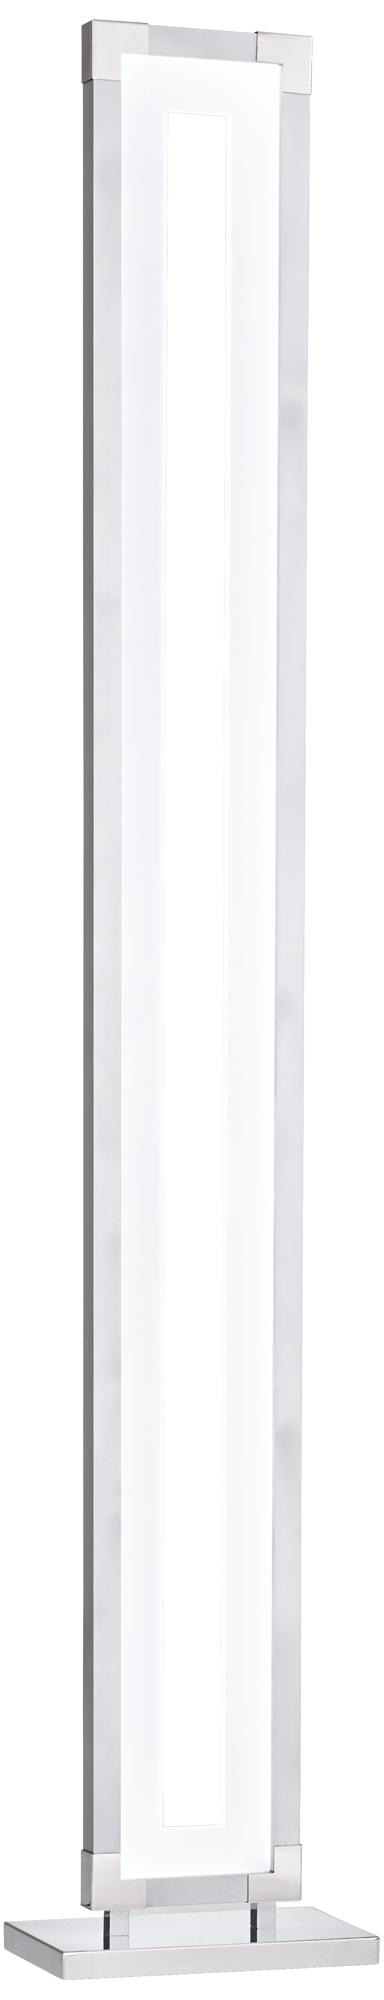 Mirra Acrylic Window Chrome LED Floor Lamp (8N521)